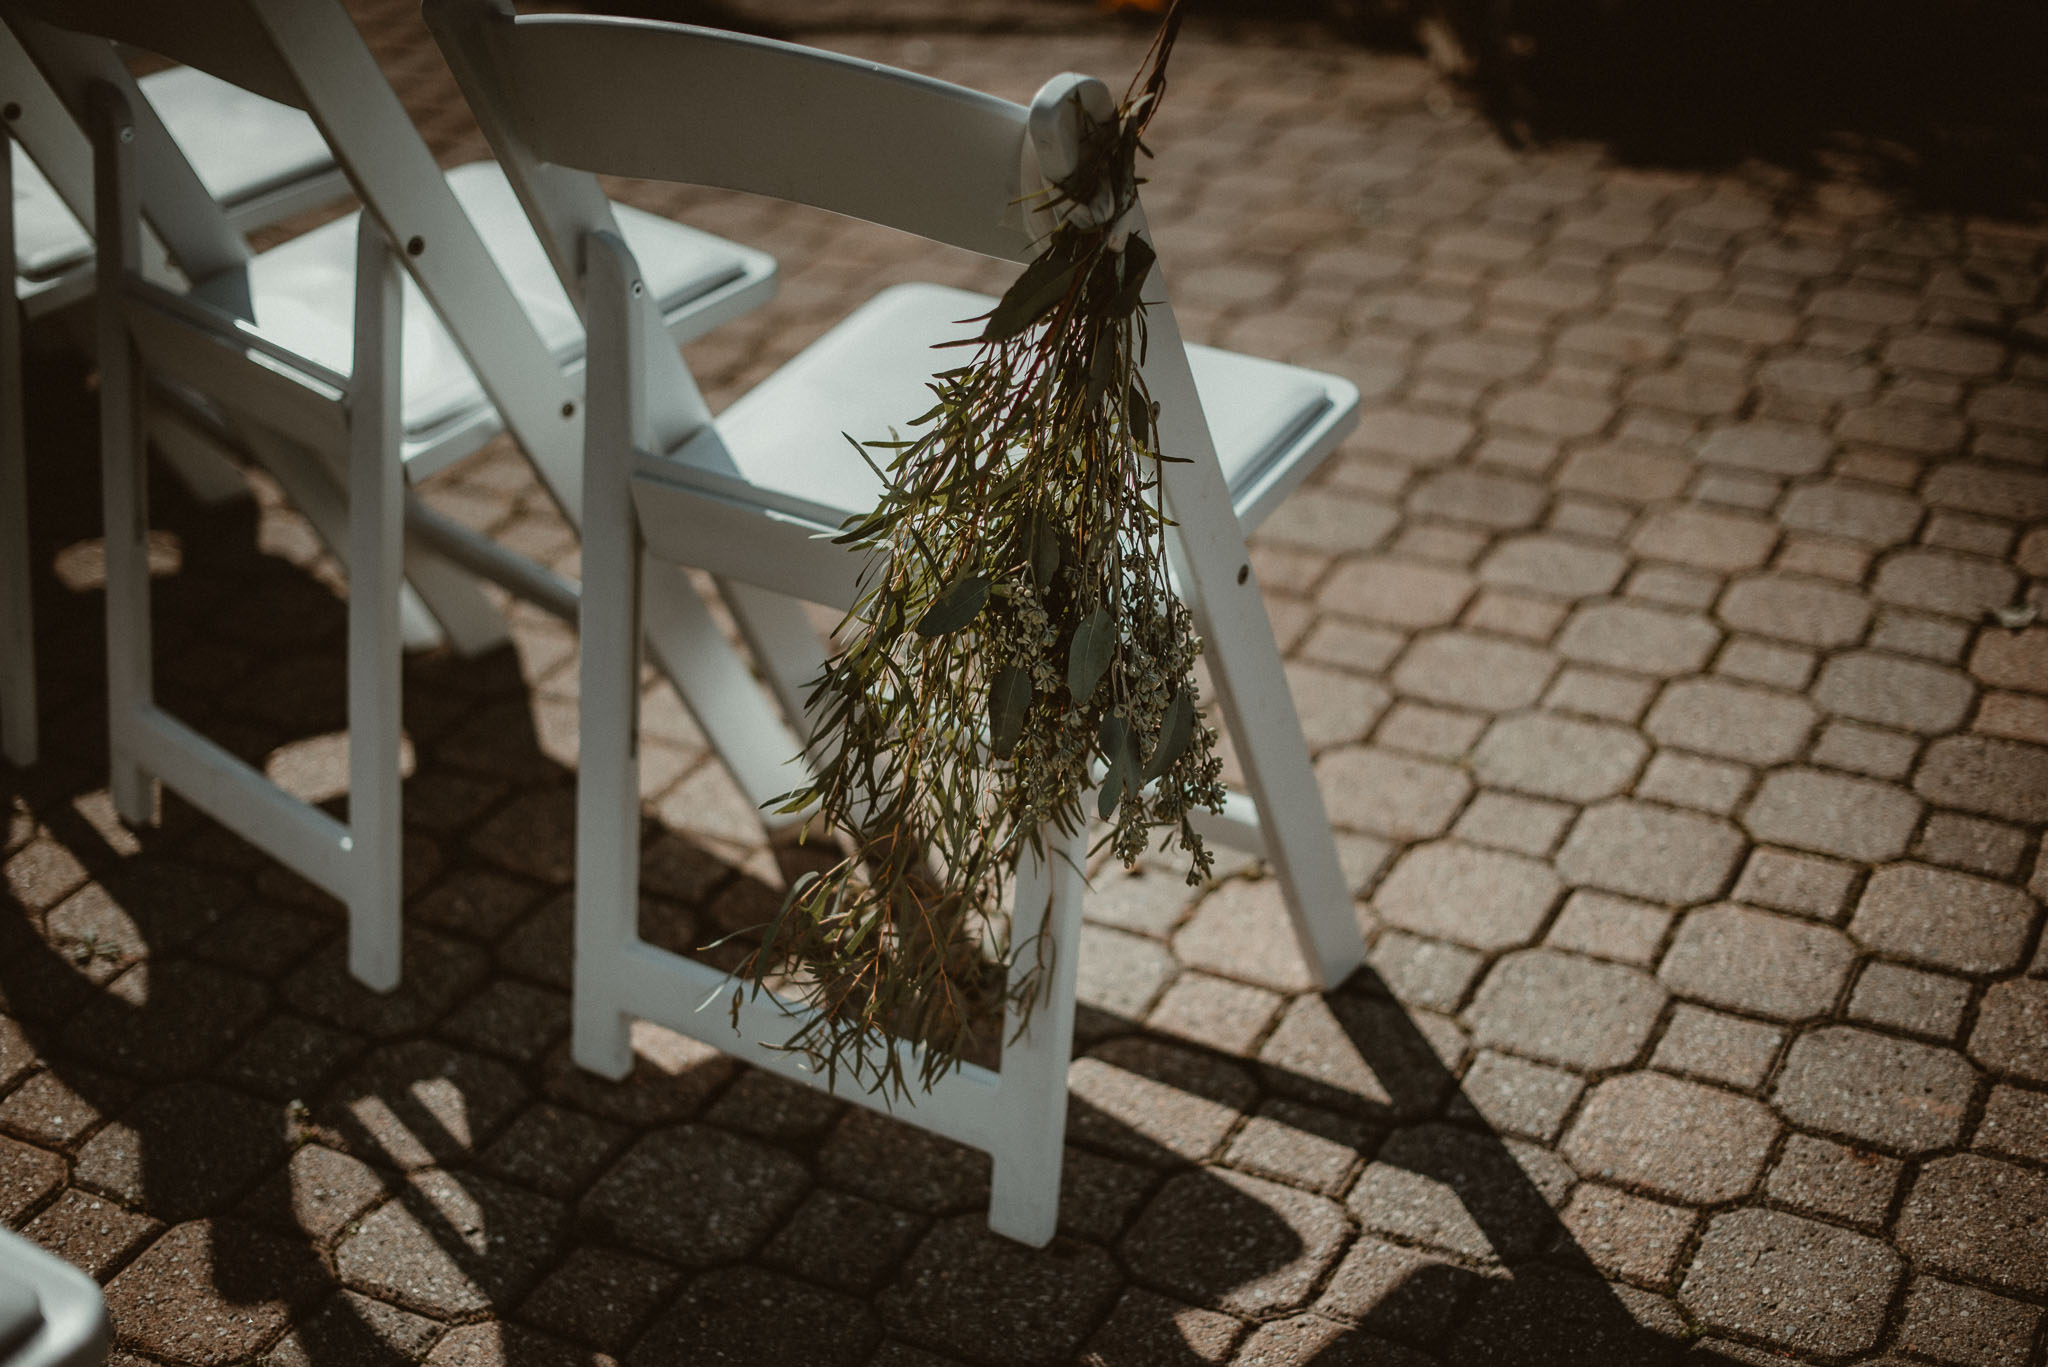 Guest chair with decorative greens